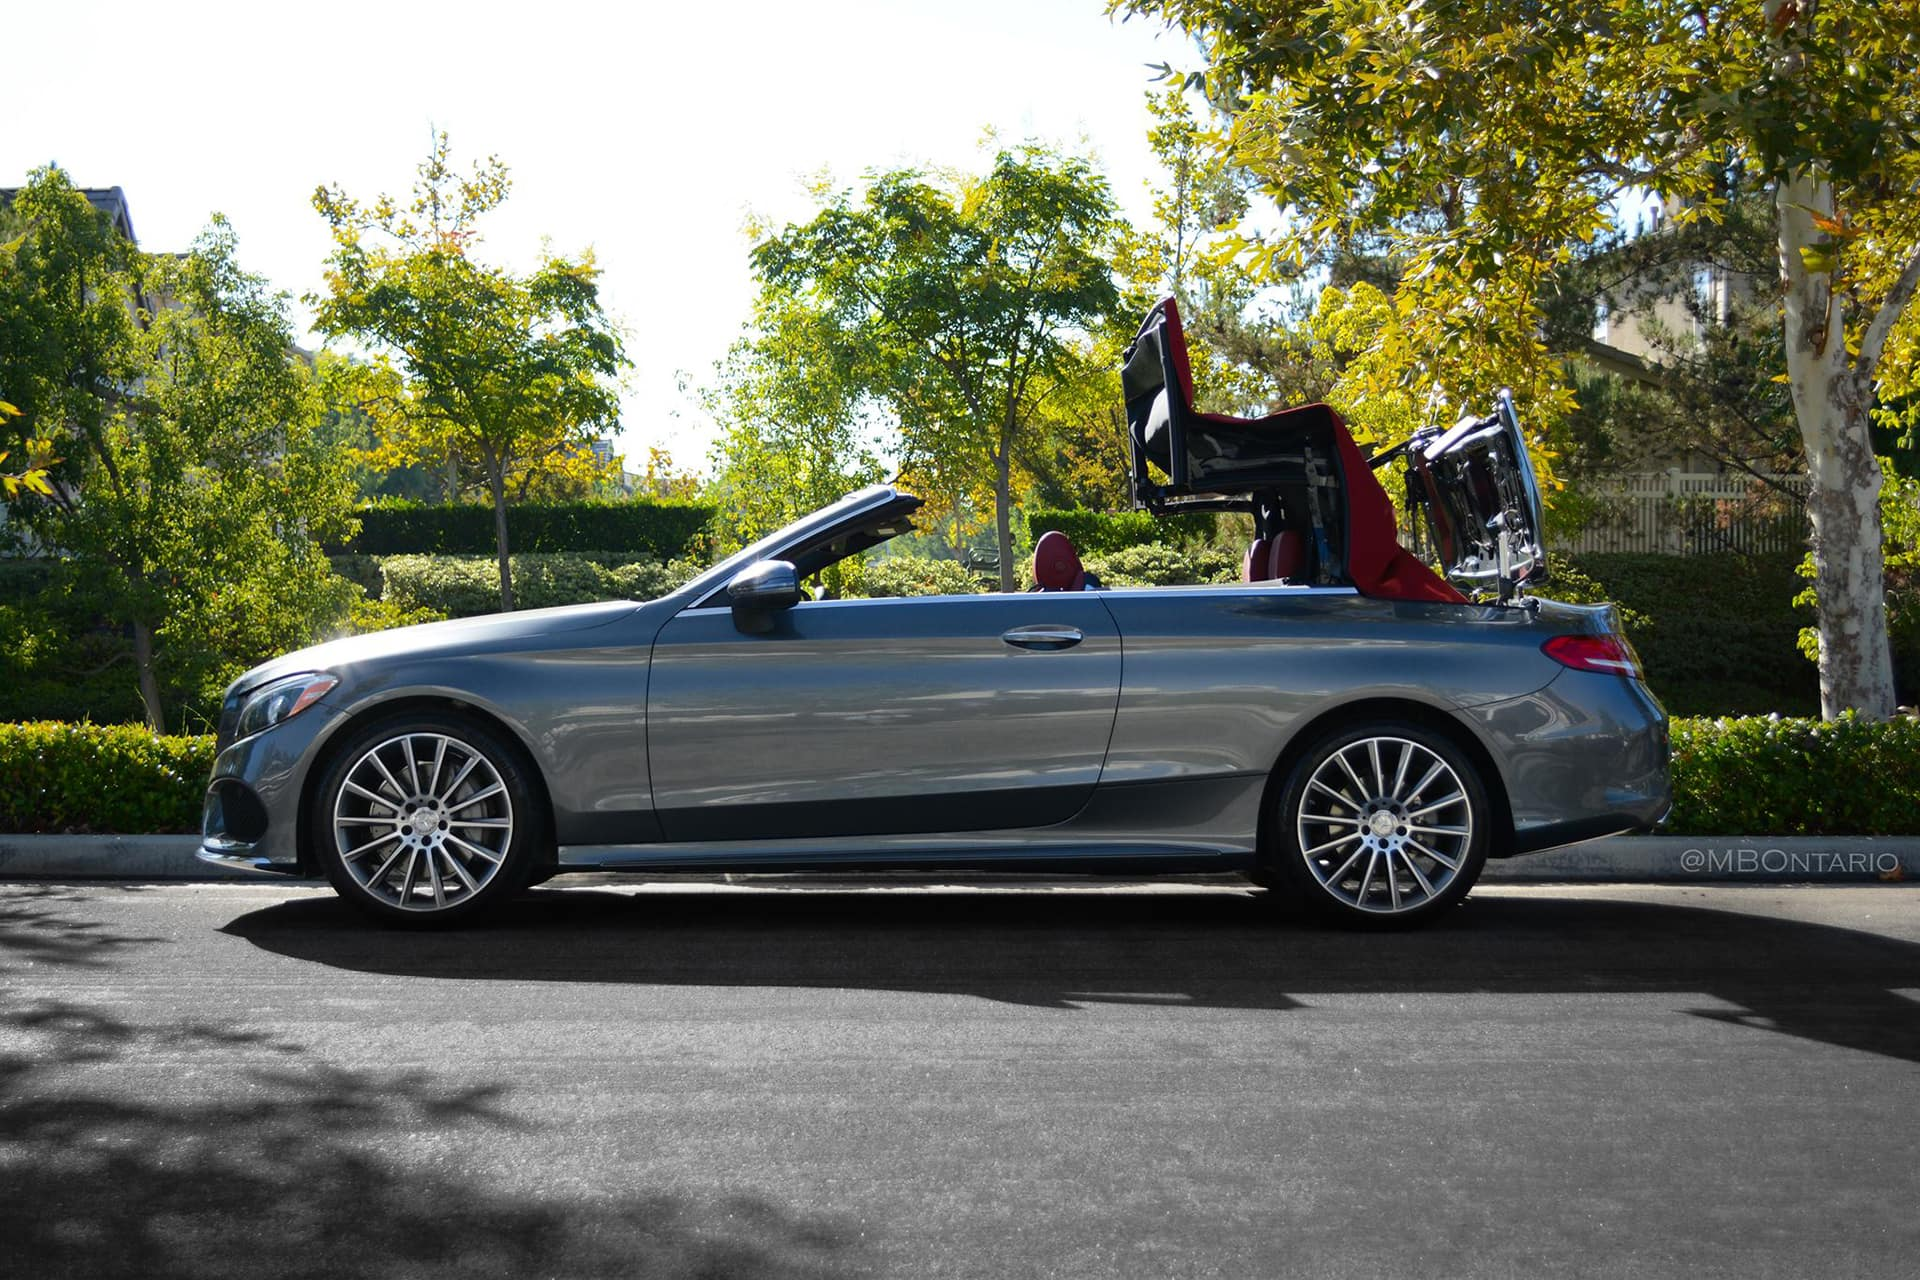 8e5f915693b9 Let s Go Topless! 4 Reasons To Take a Road Trip in a Mercedes-Benz ...